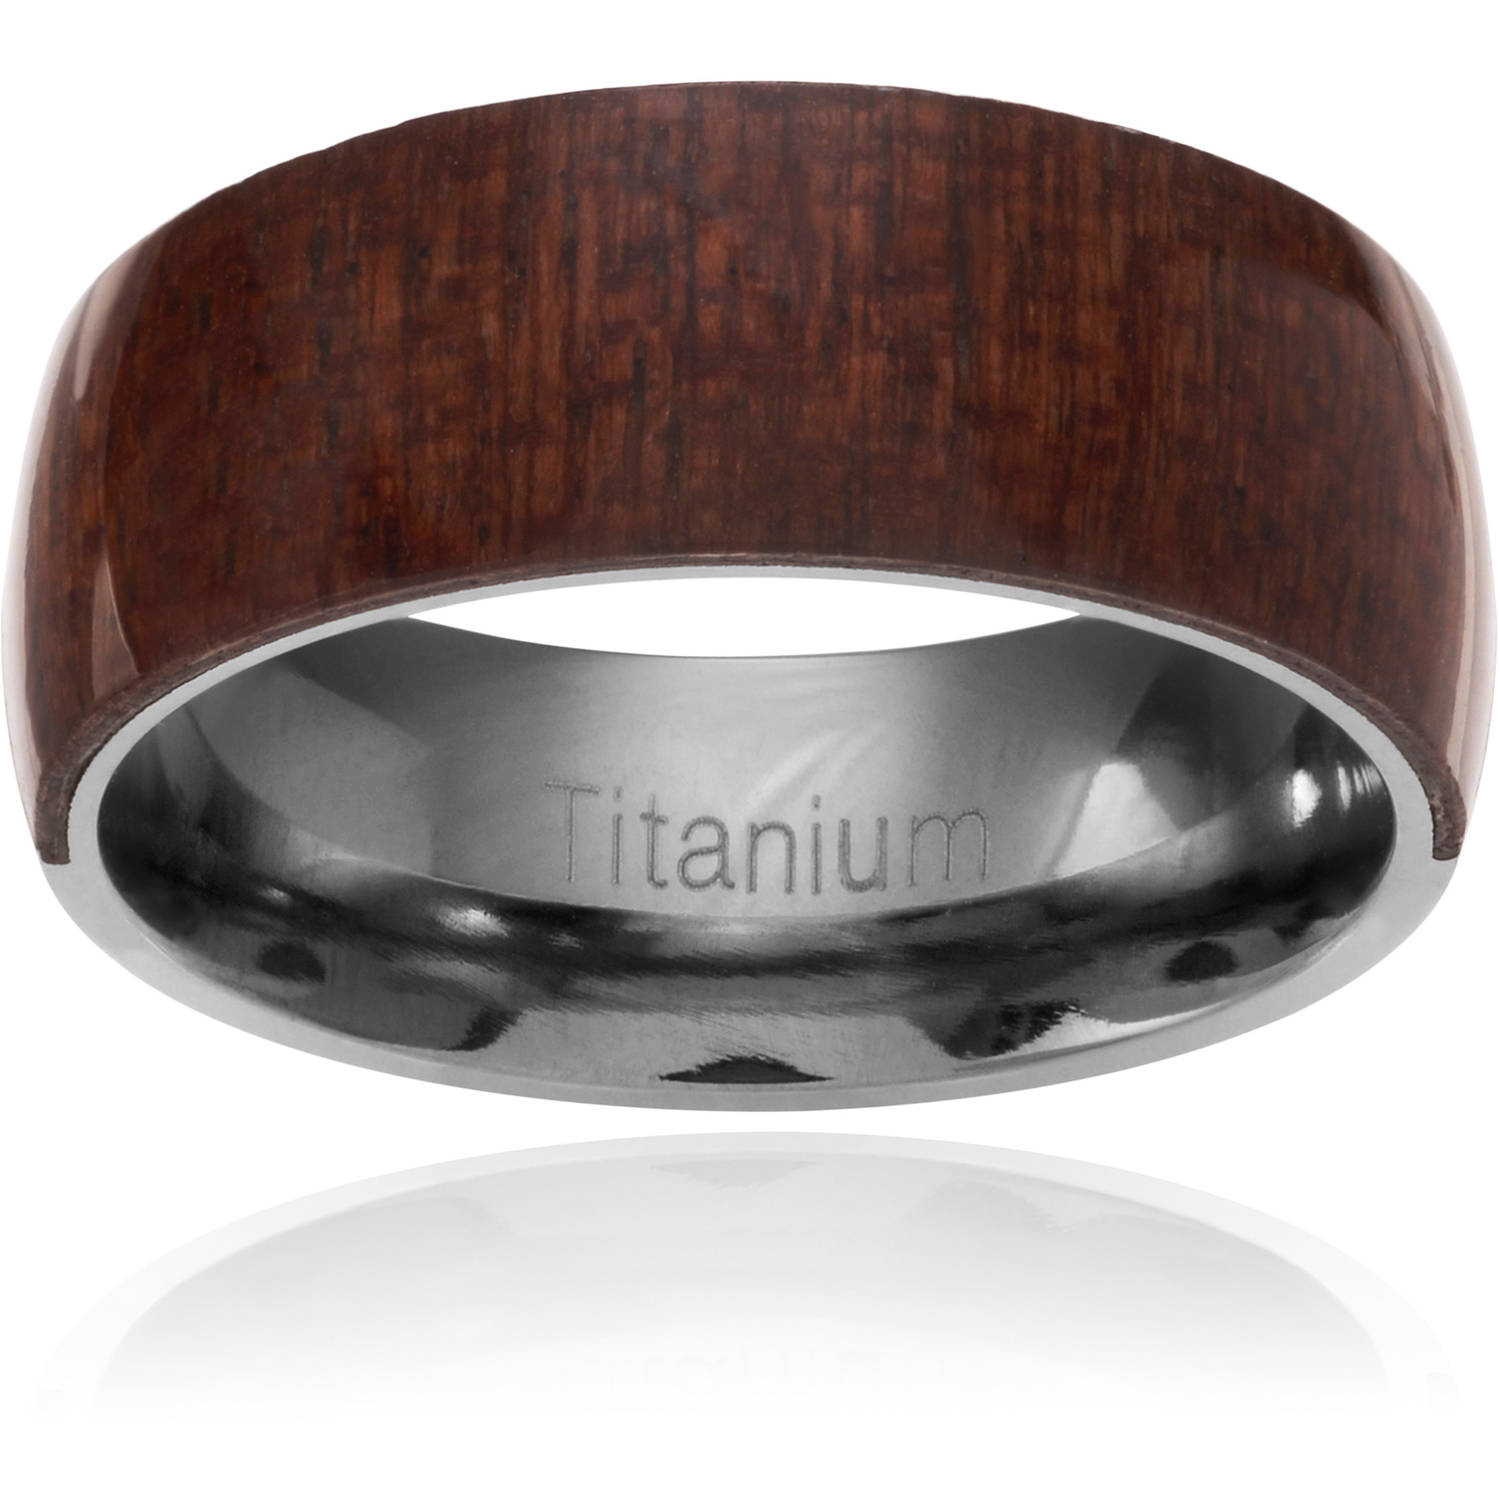 Daxx Men's Titanium Mahogany Wood Inlay Fashion Ring, 8mm